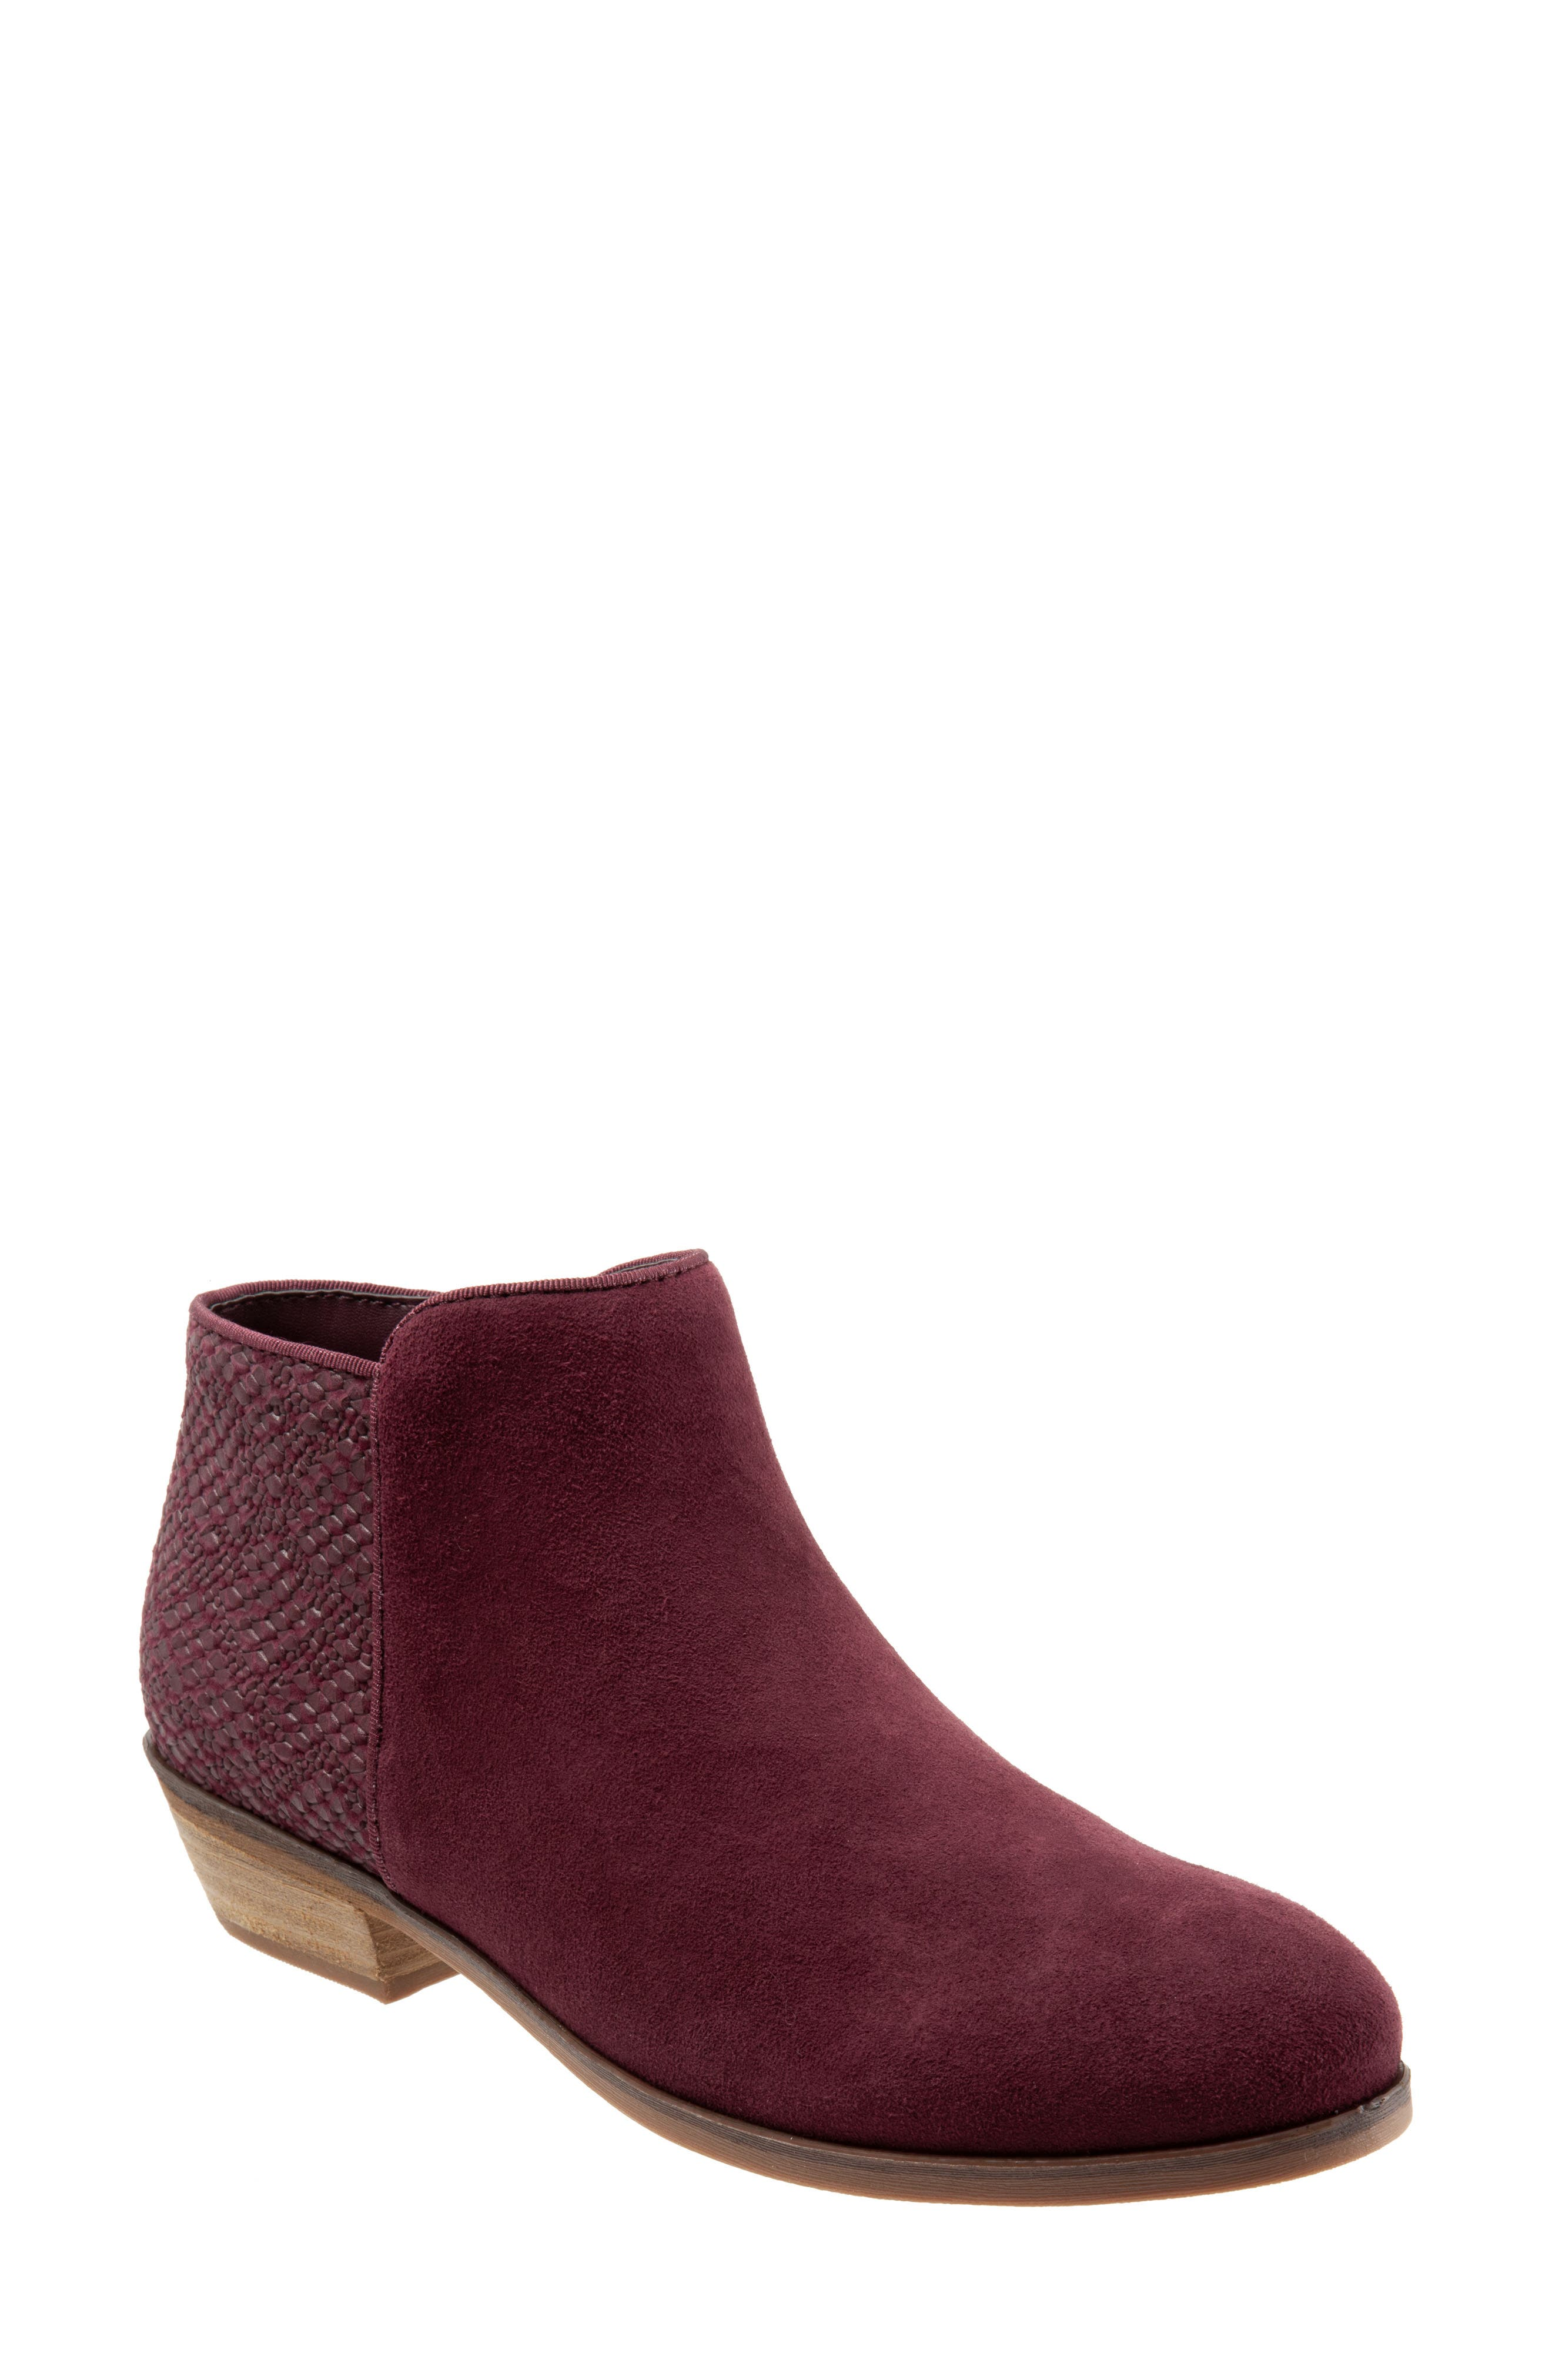 'Rocklin' Bootie,                             Main thumbnail 1, color,                             BURGUNDY LEATHER